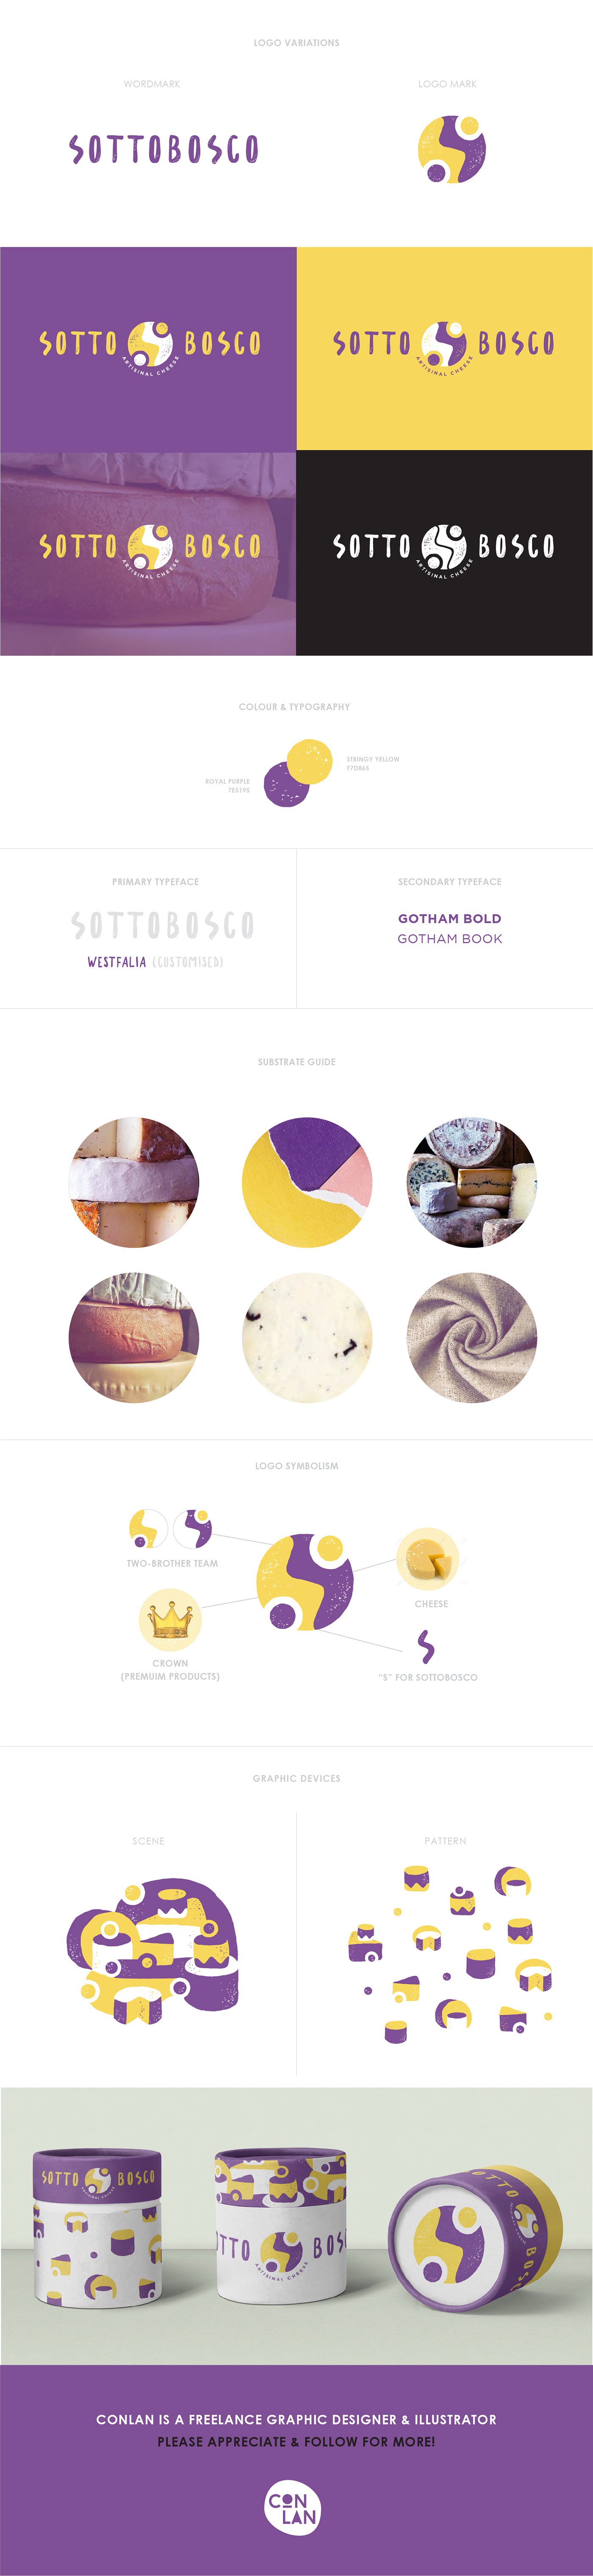 Cheese Italy cape town premium handmade informal Packaging packaging design ILLUSTRATION  south africa